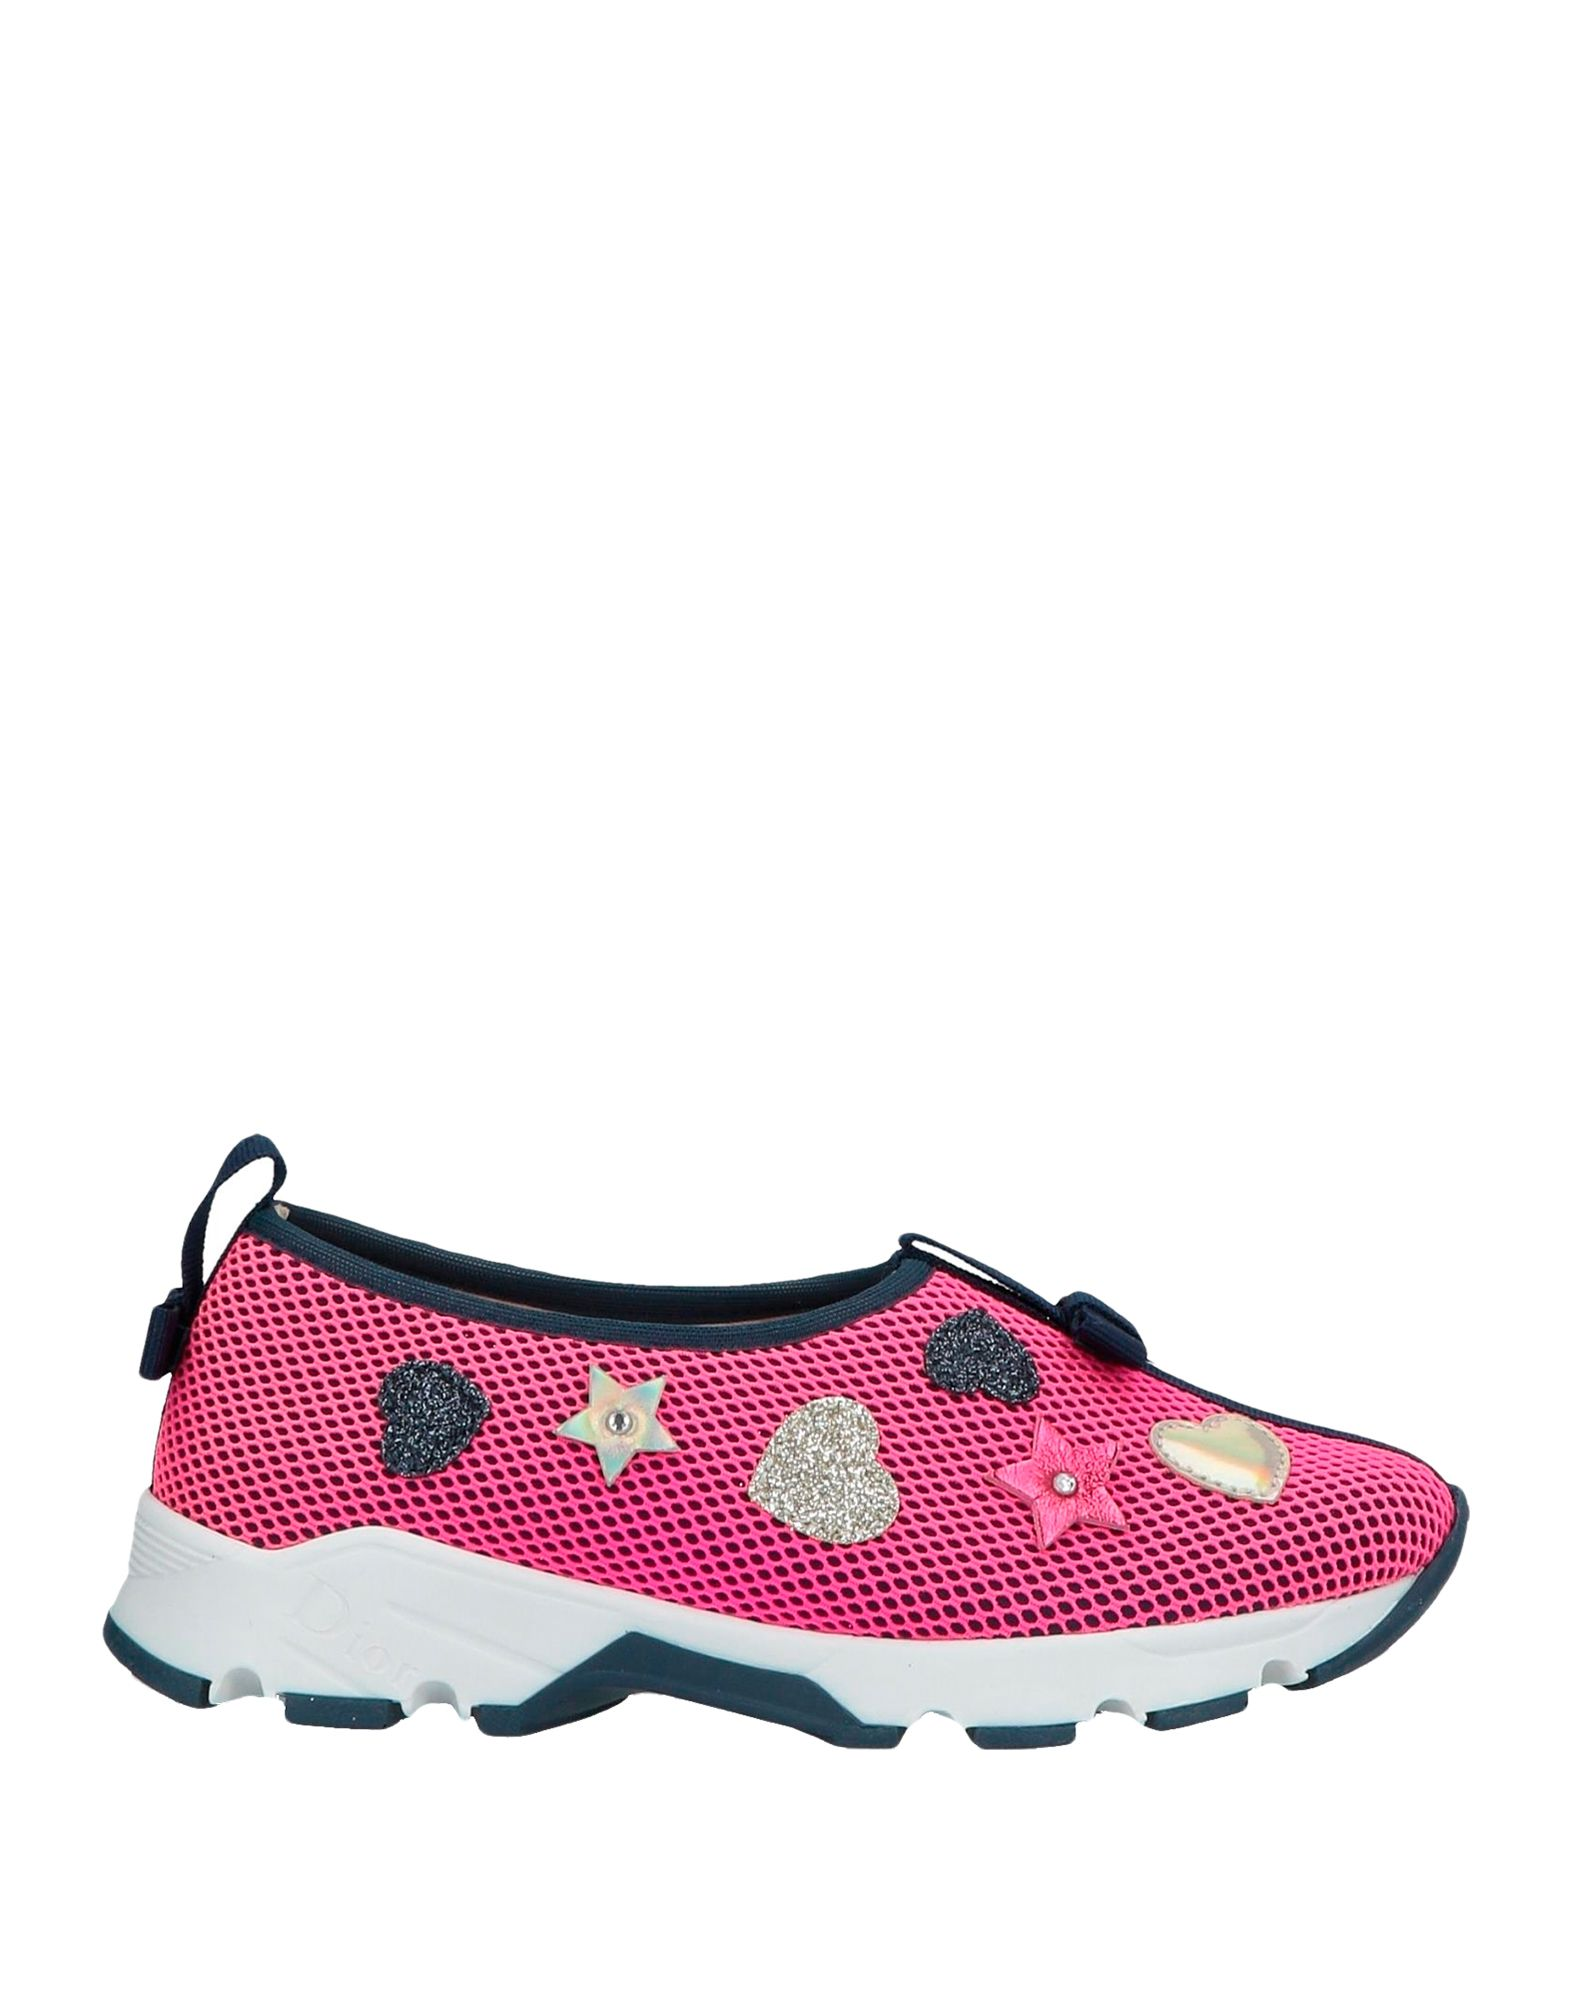 BABY DIOR | BABY DIOR Low-Tops & Sneakers 11683590 | Goxip